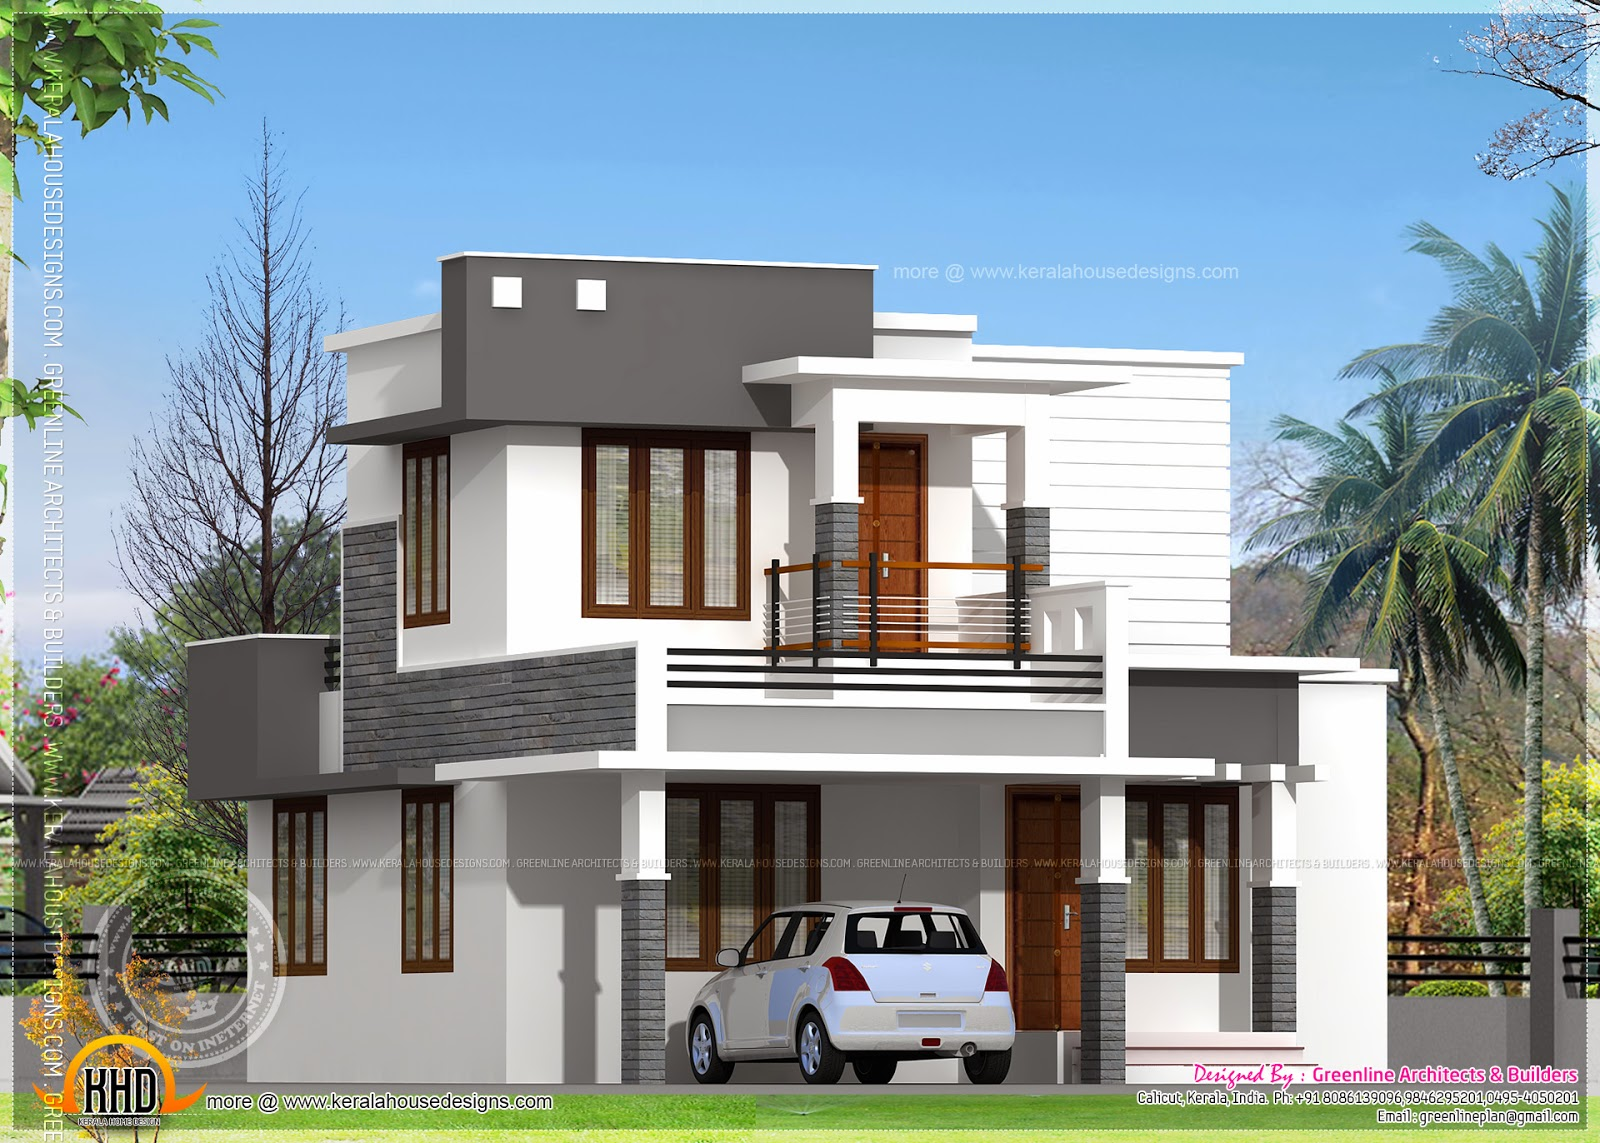 Small flat roof double stories house kerala home design - Flat roof home designs ...